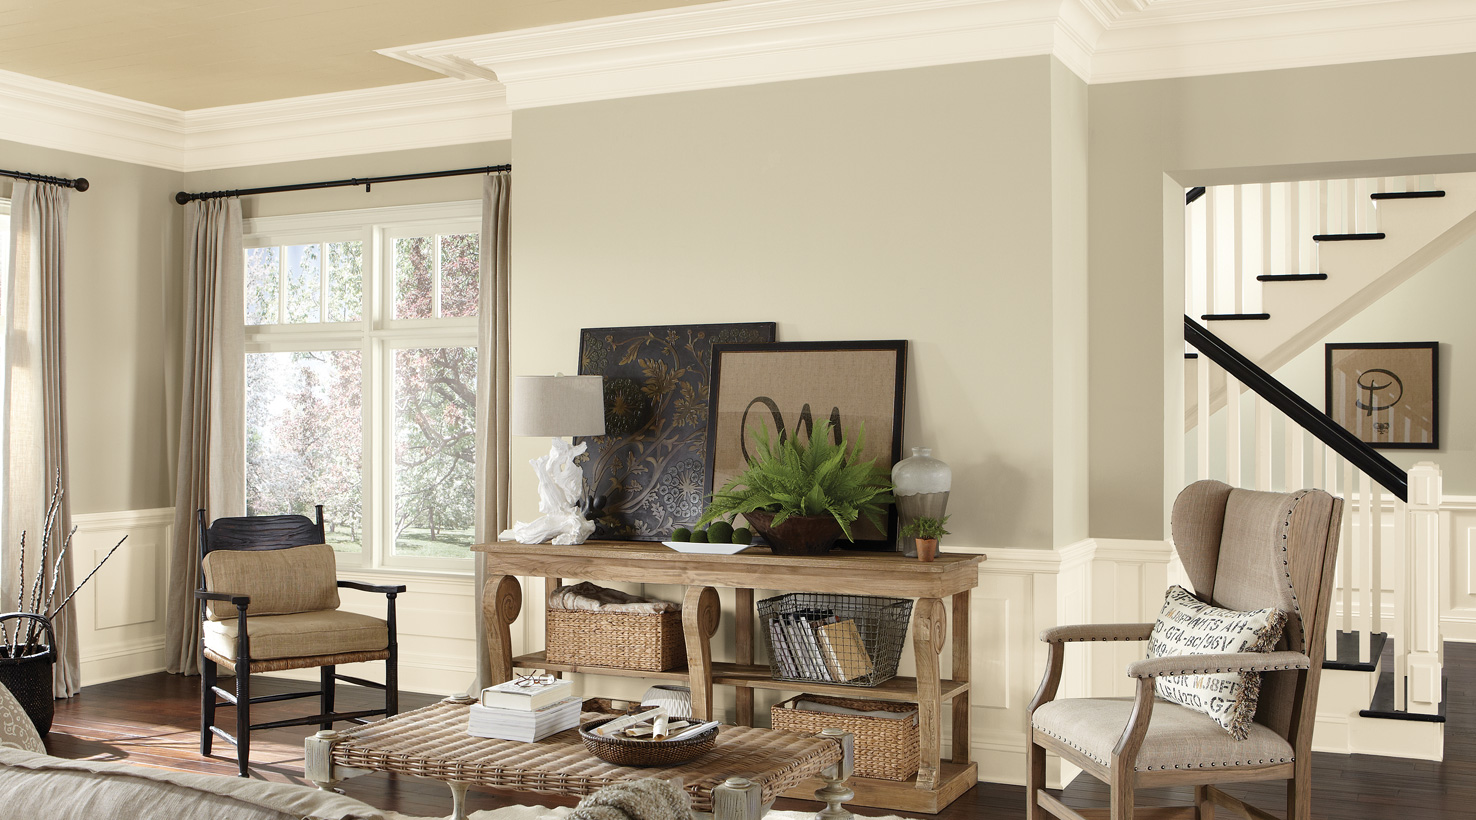 living room paint color ideas inspiration gallery sherwin williams rh sherwin williams com colour ideas for painting living room ideas for painting living room walls